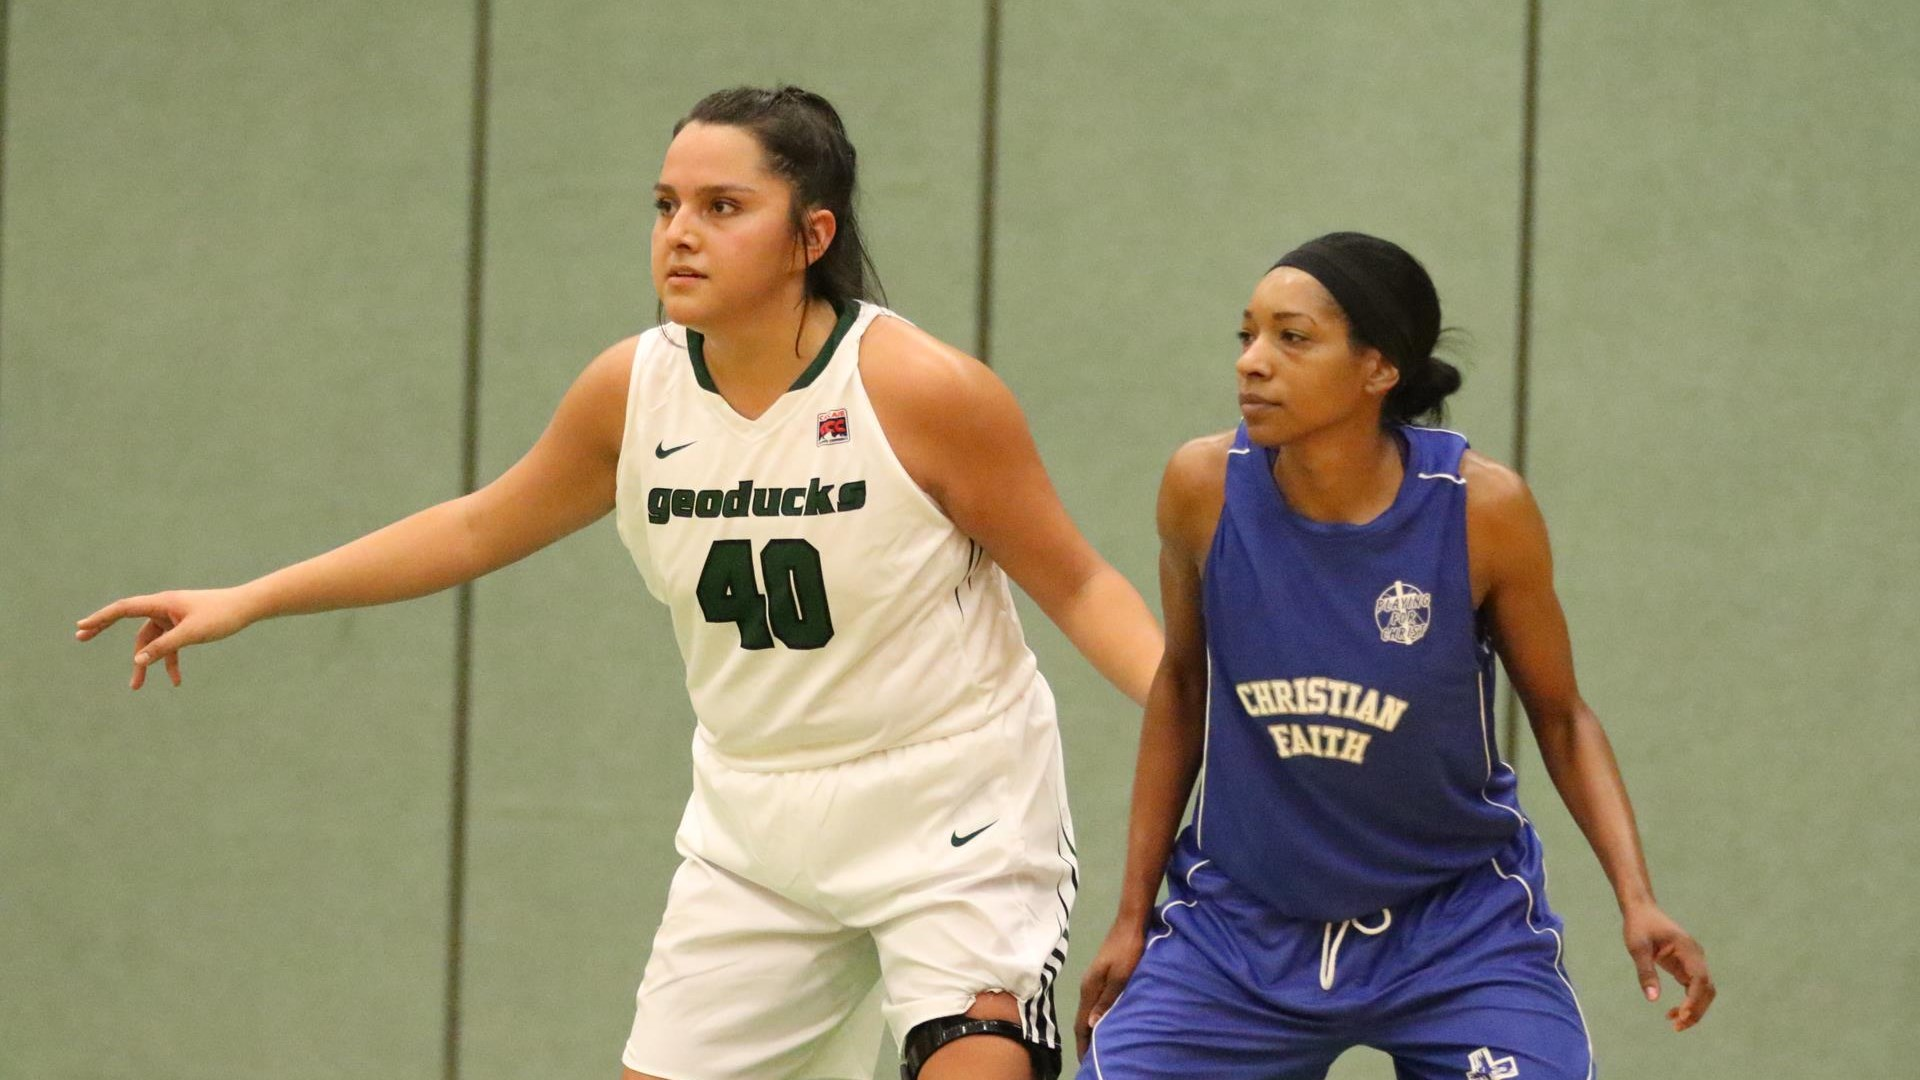 Evergreen Beats Christian Faith in Exhibition Game